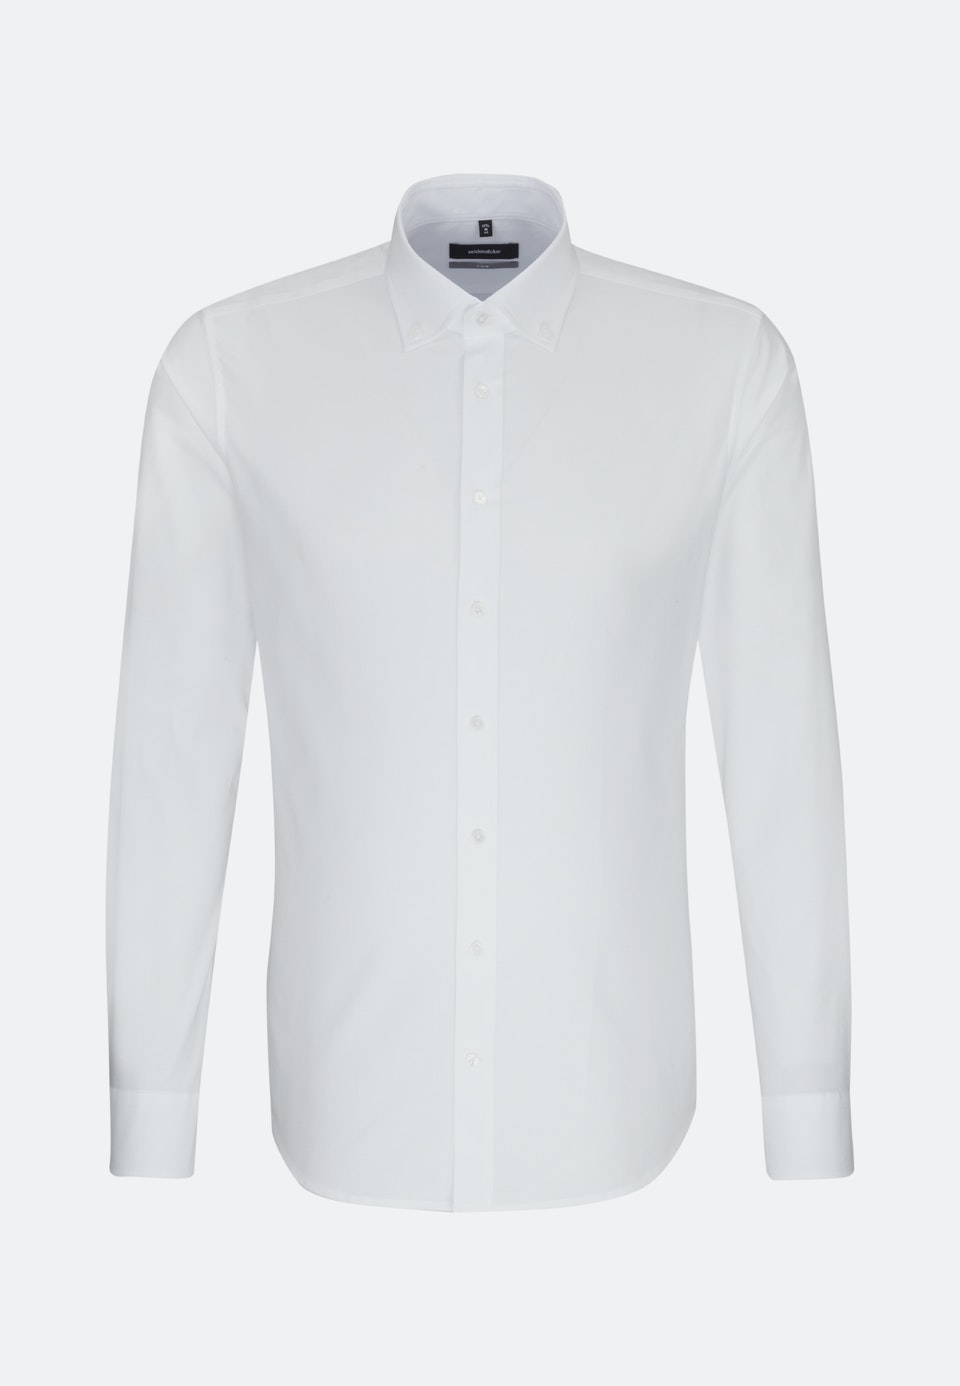 Bügelleichtes Oxford Business Hemd in X-Slim mit Button-Down-Kragen in Weiß |  Seidensticker Onlineshop